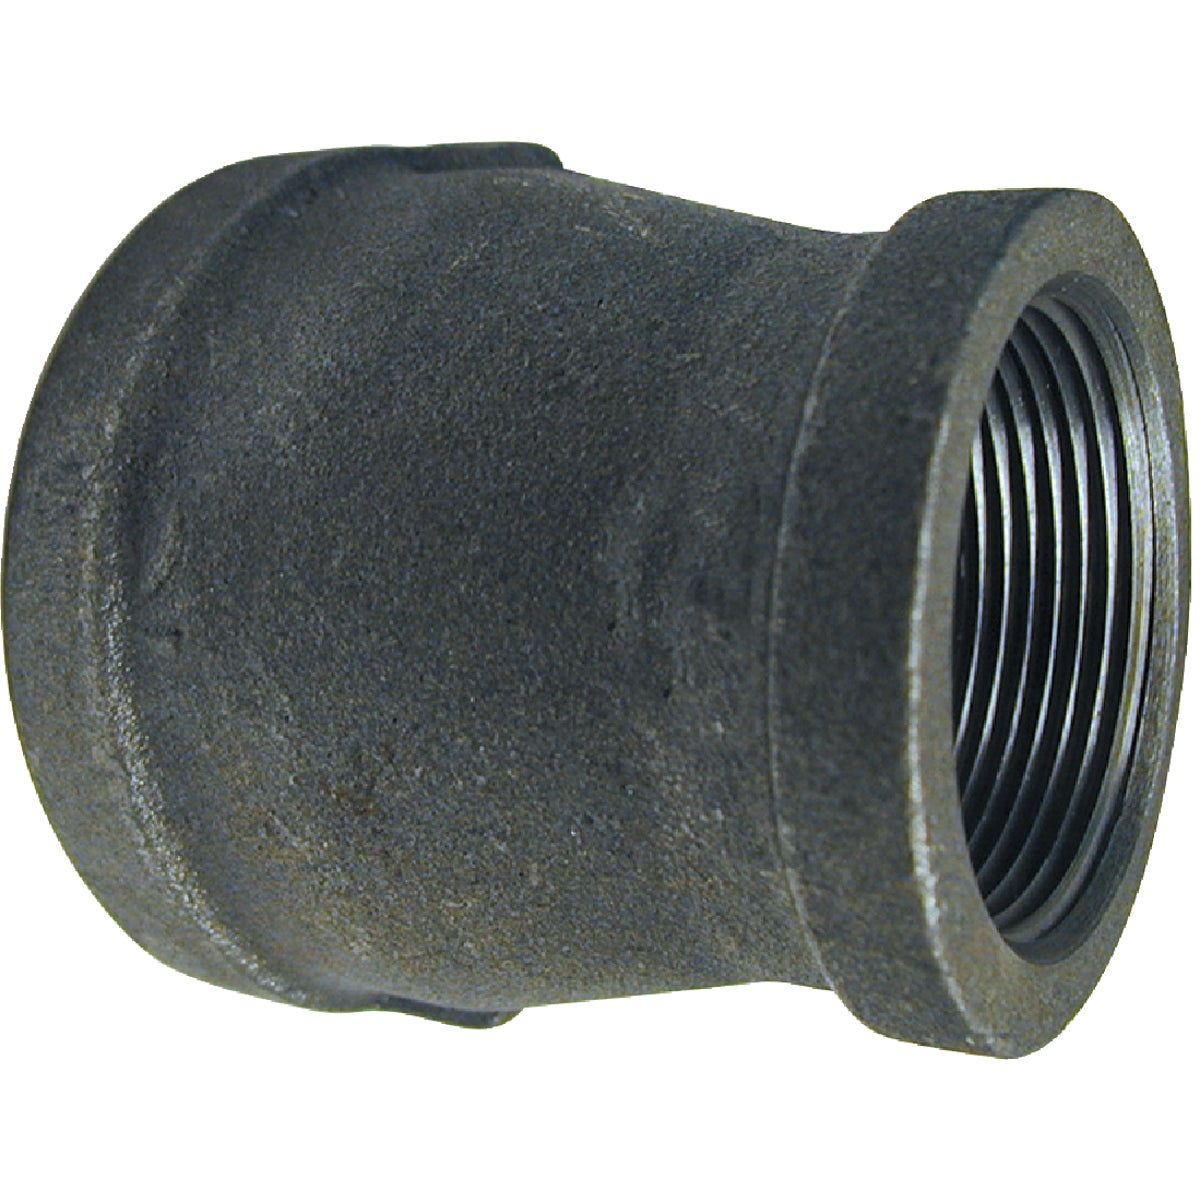 3/8X1/4 BLACK COUPLING - 521-321BG by Mueller B K